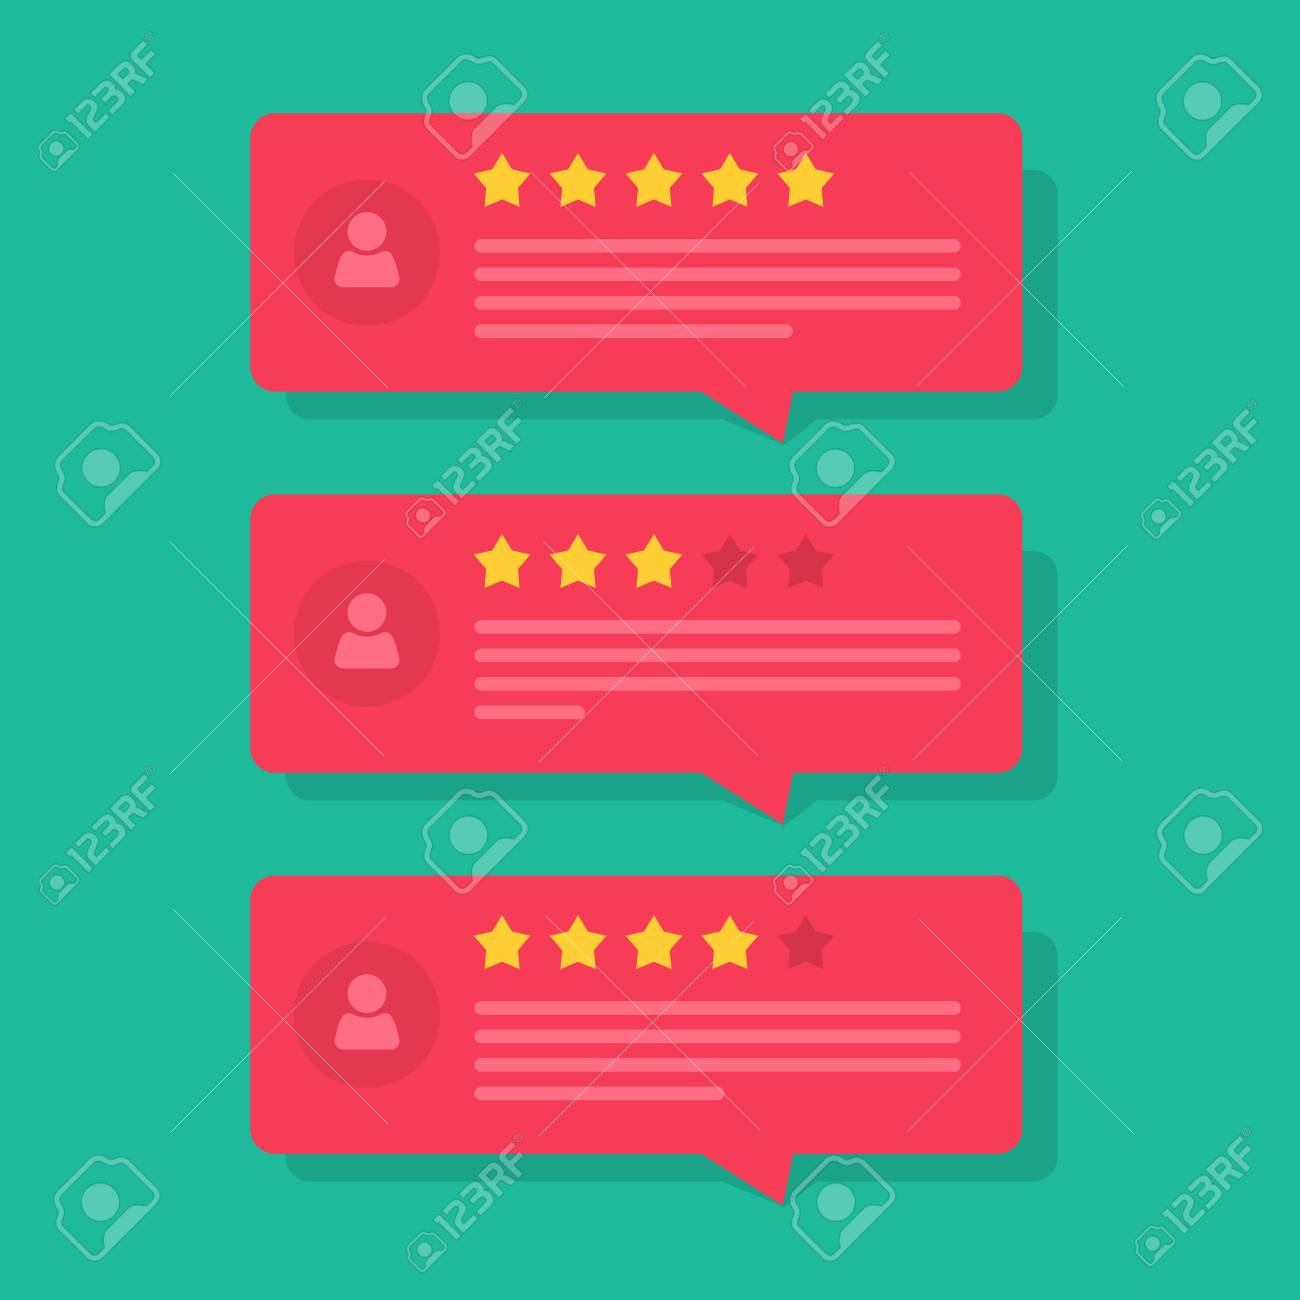 Review rating bubble speeches vector illustration, flat style reviews stars with good and bad rate and text, concept of testimonial messages, notification alerts, feedback evaluation - 72305538